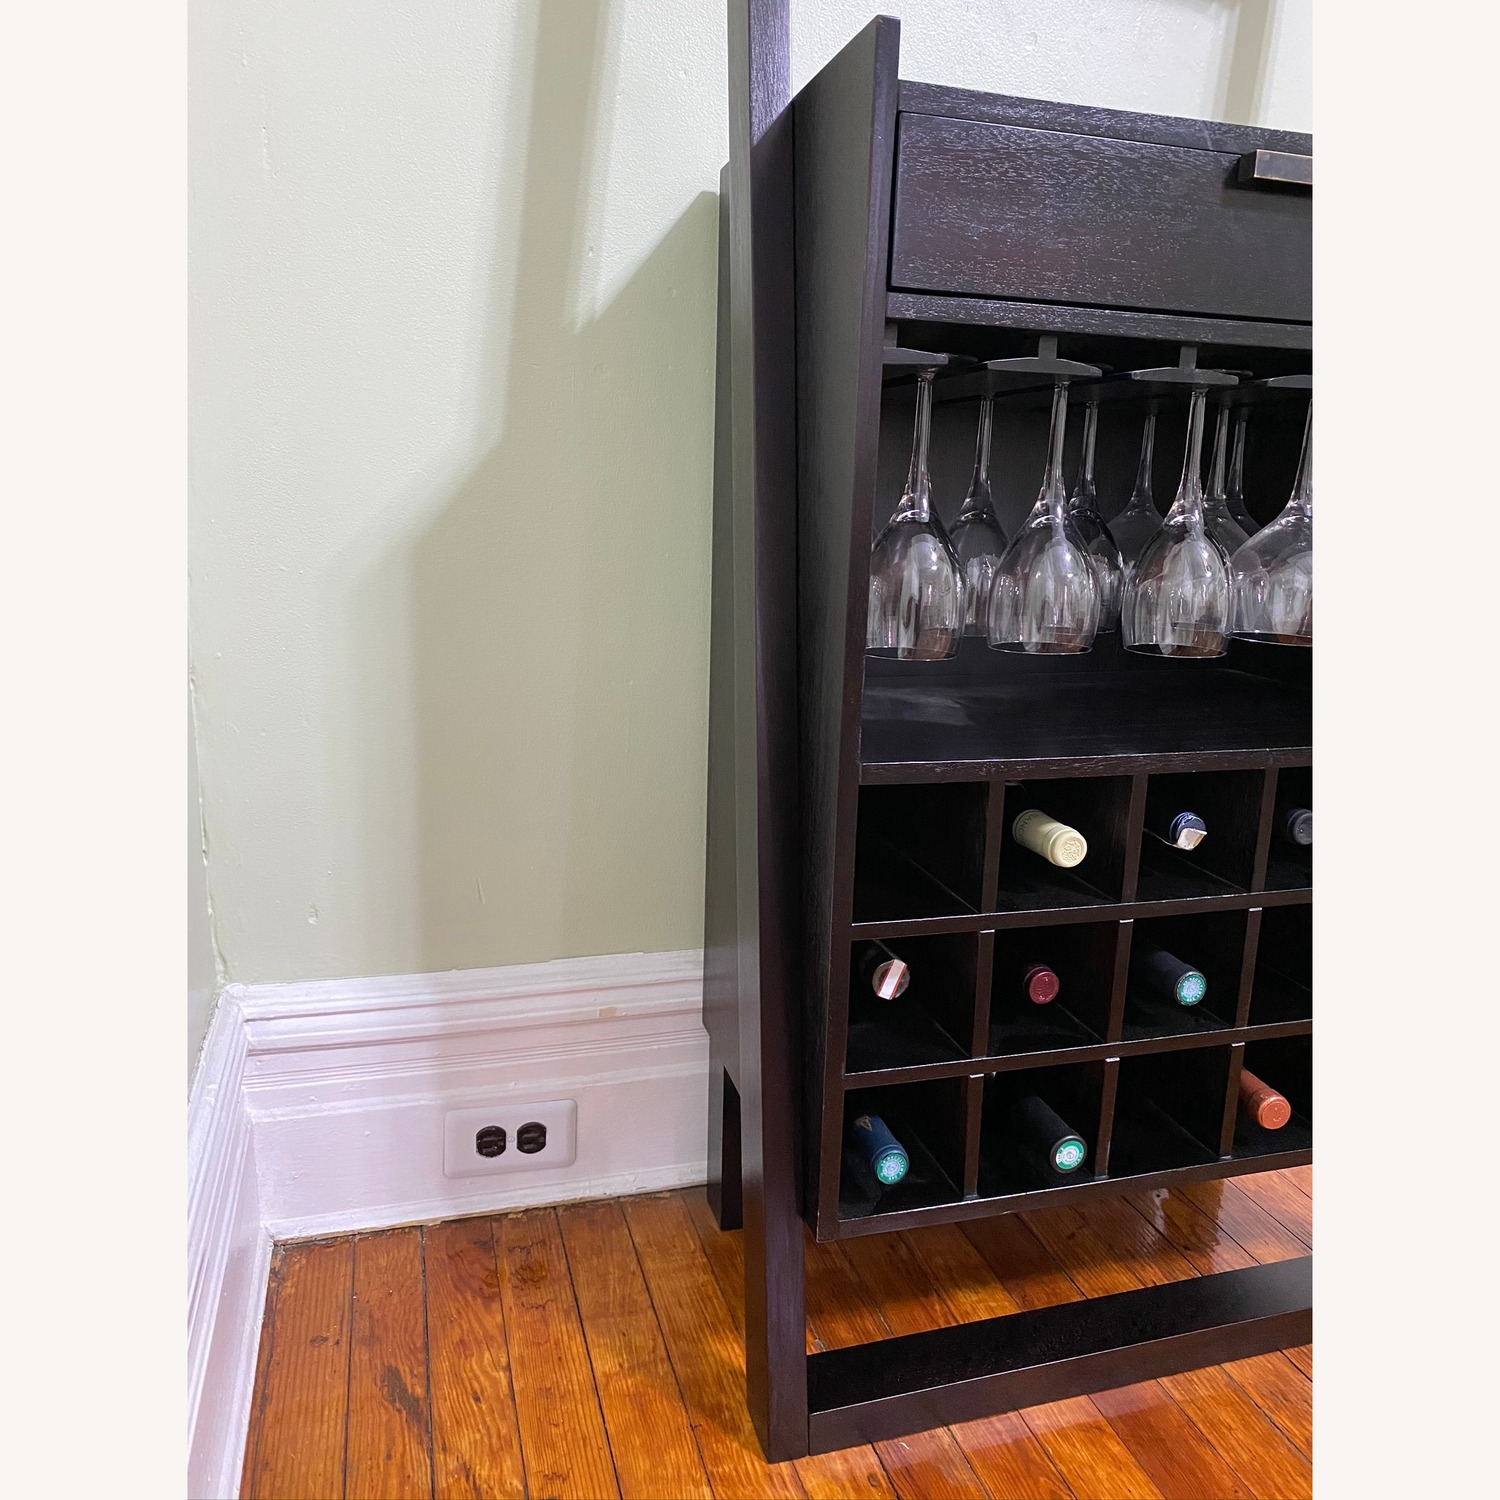 Crate & Barrel Sloane Espresso Leaning Wine Bar - image-7